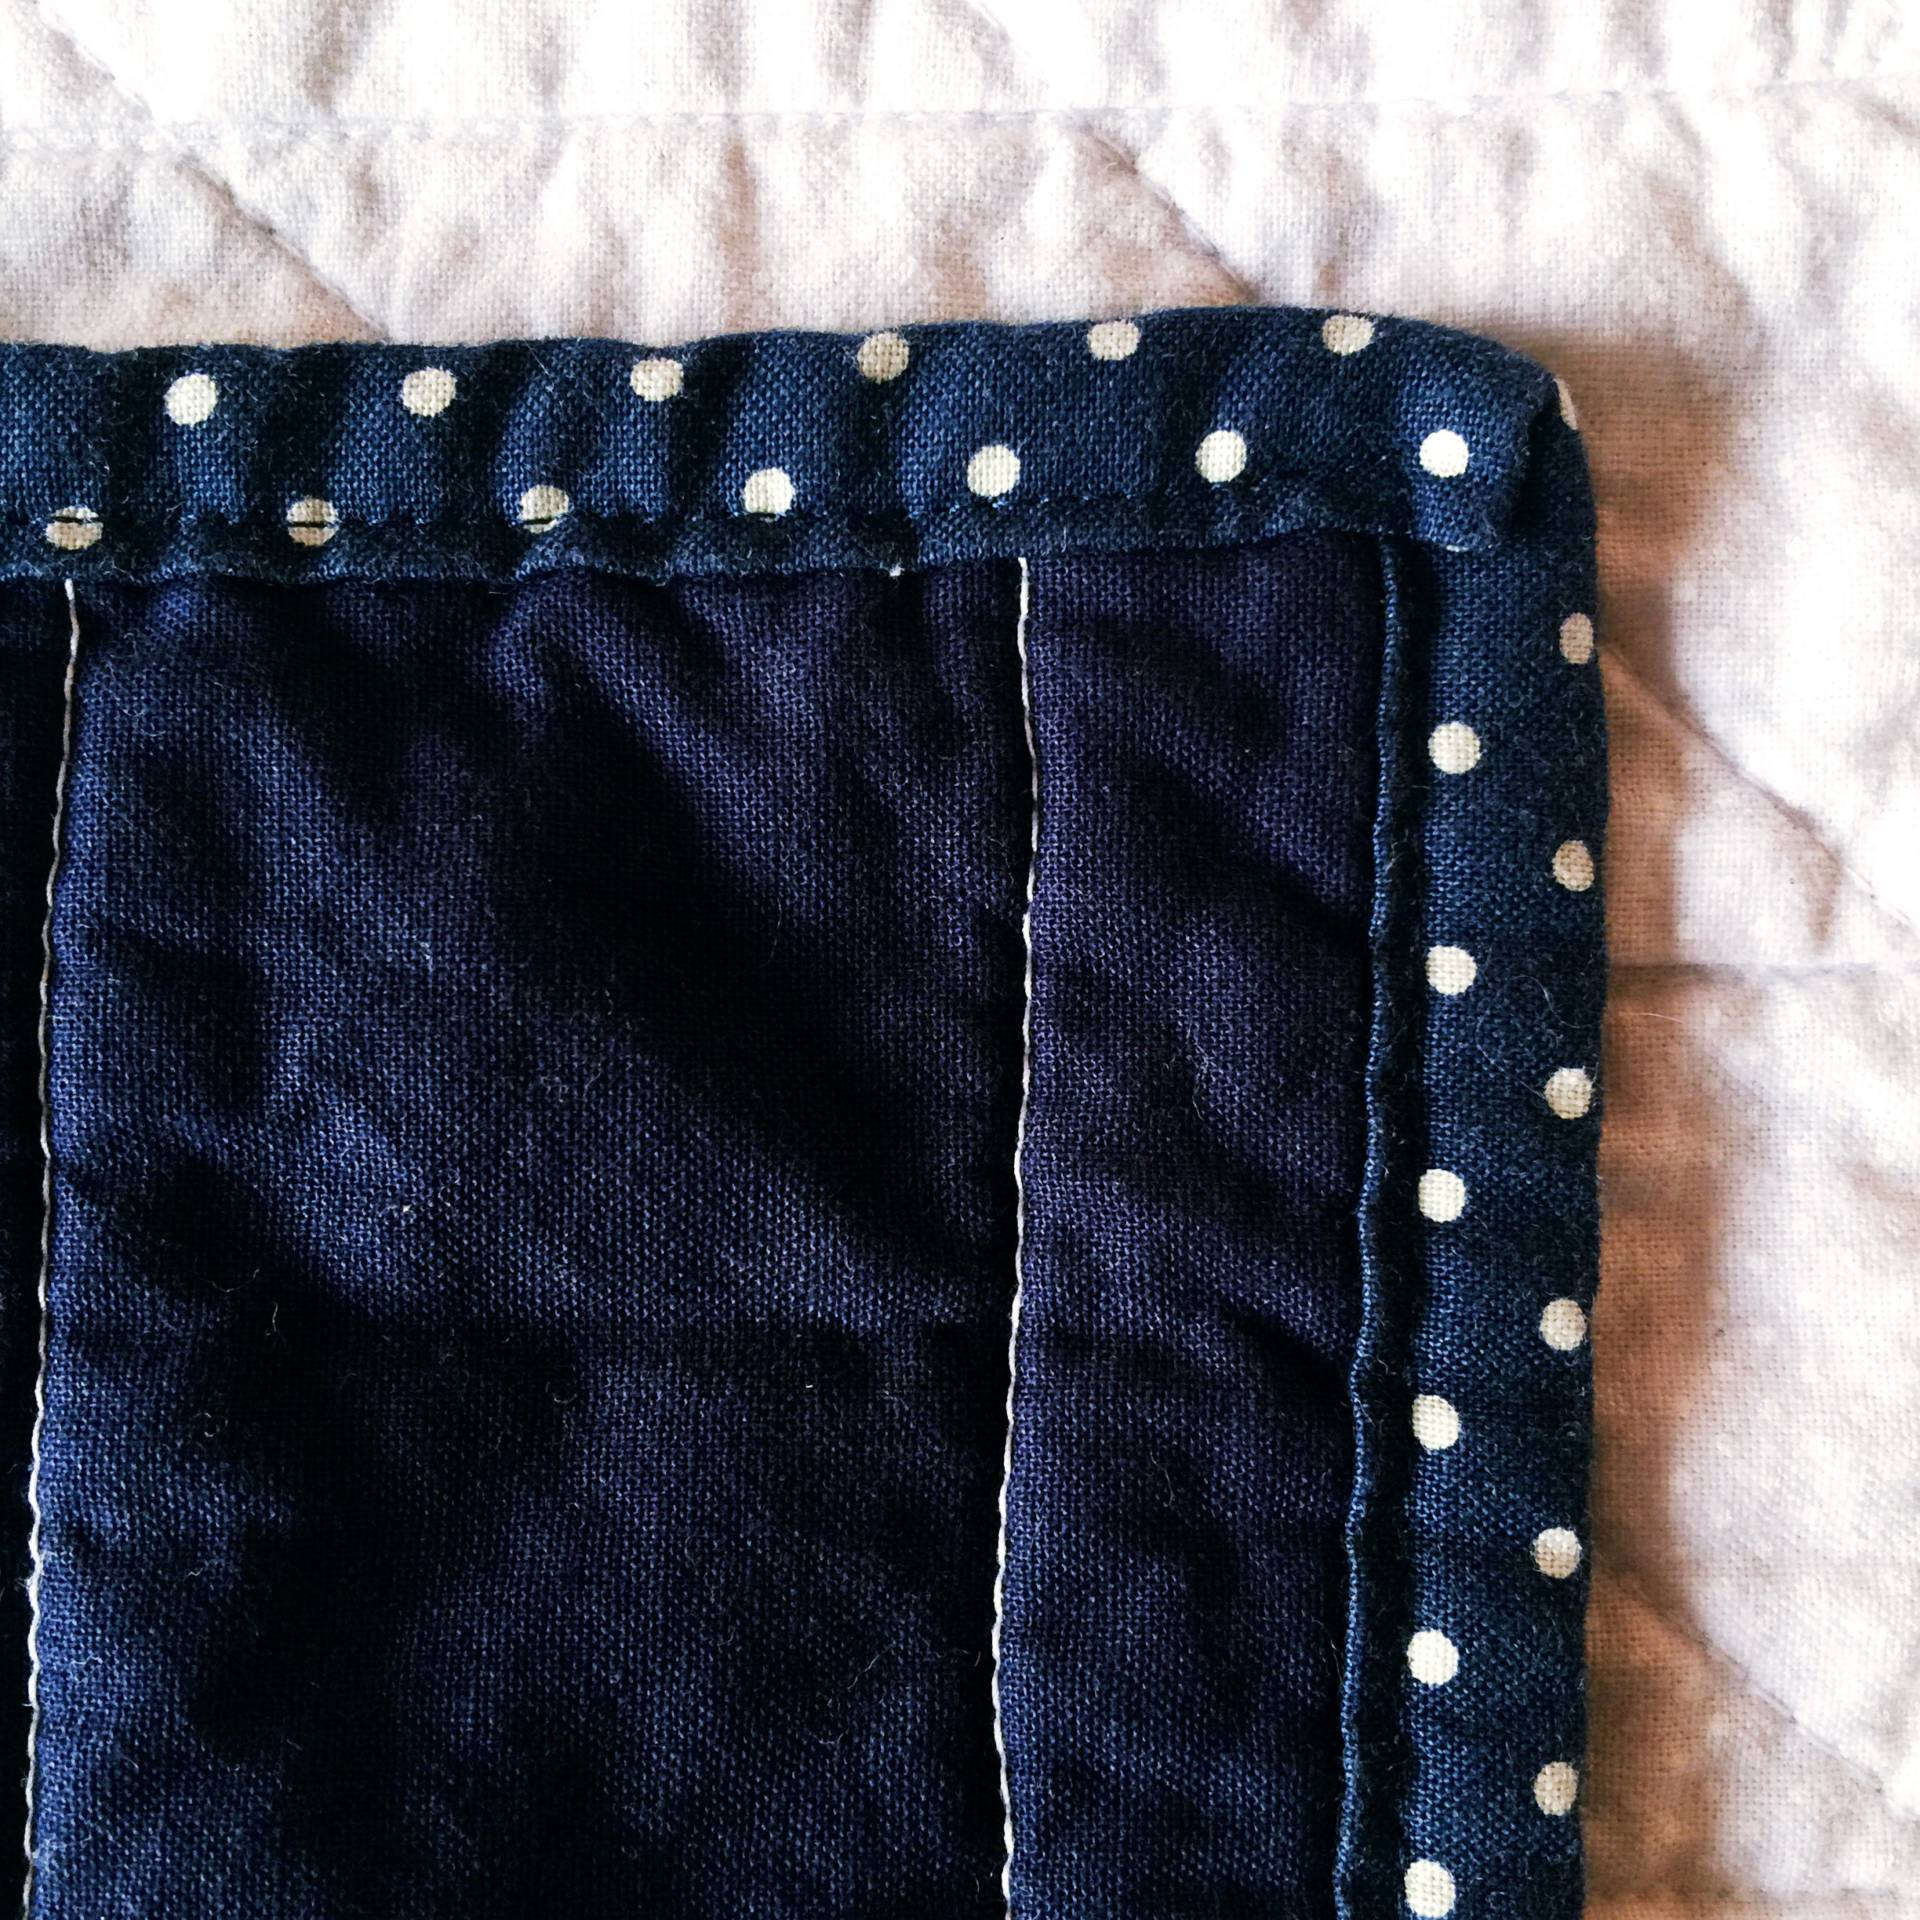 Using bias tape as binding worked really well for me this time! I definitely prefer it to the stitch i n the ditch method